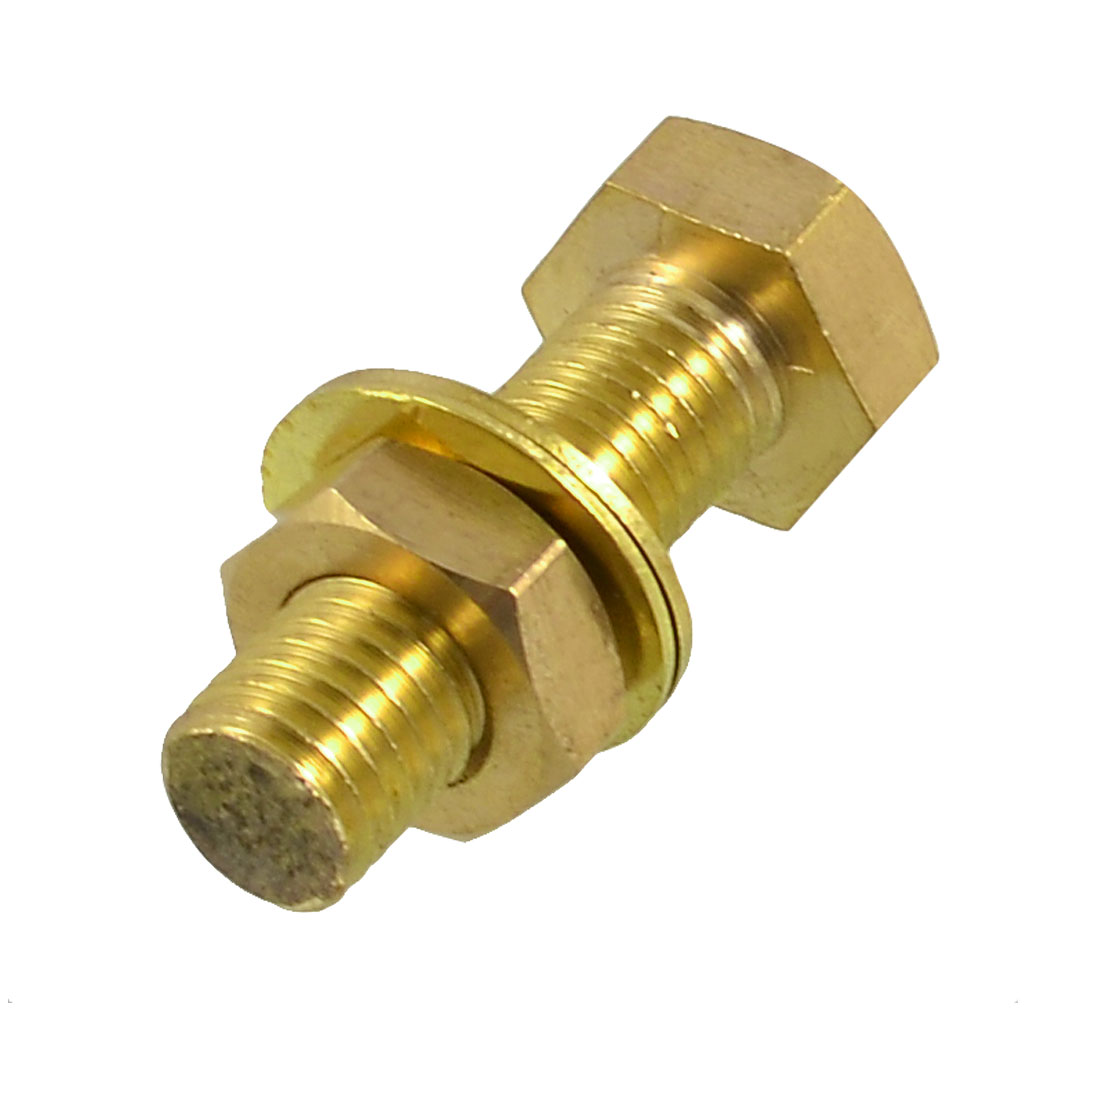 Hex Head Nut 12mm x 40mm Threaded Brass Screw Bolt w Washers